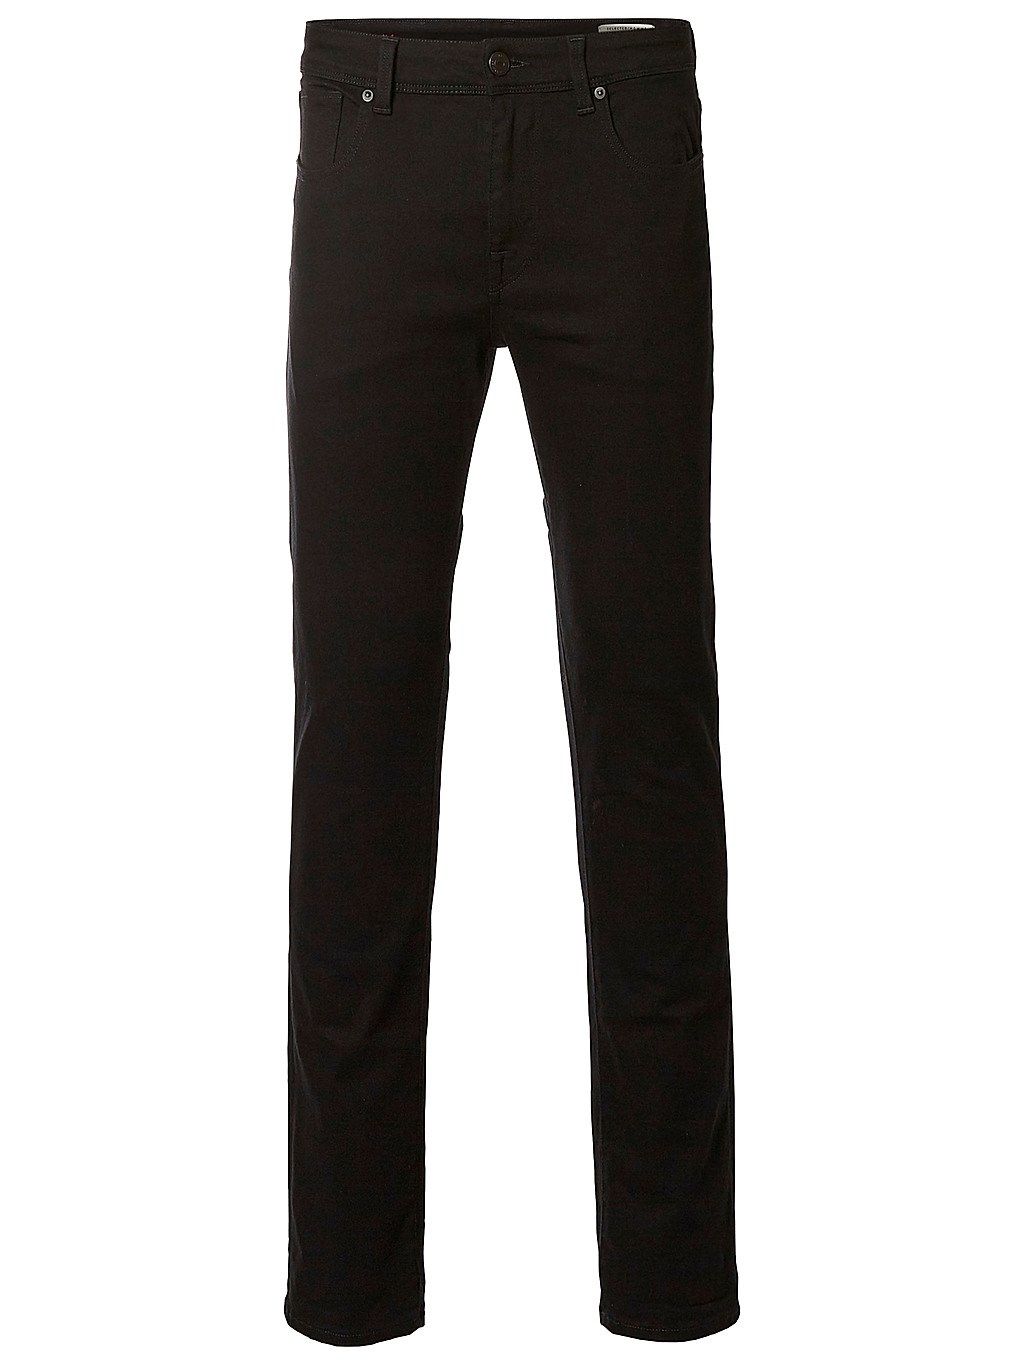 Selected Jeans - Leon 1001 Black | Gate 36 Hobro